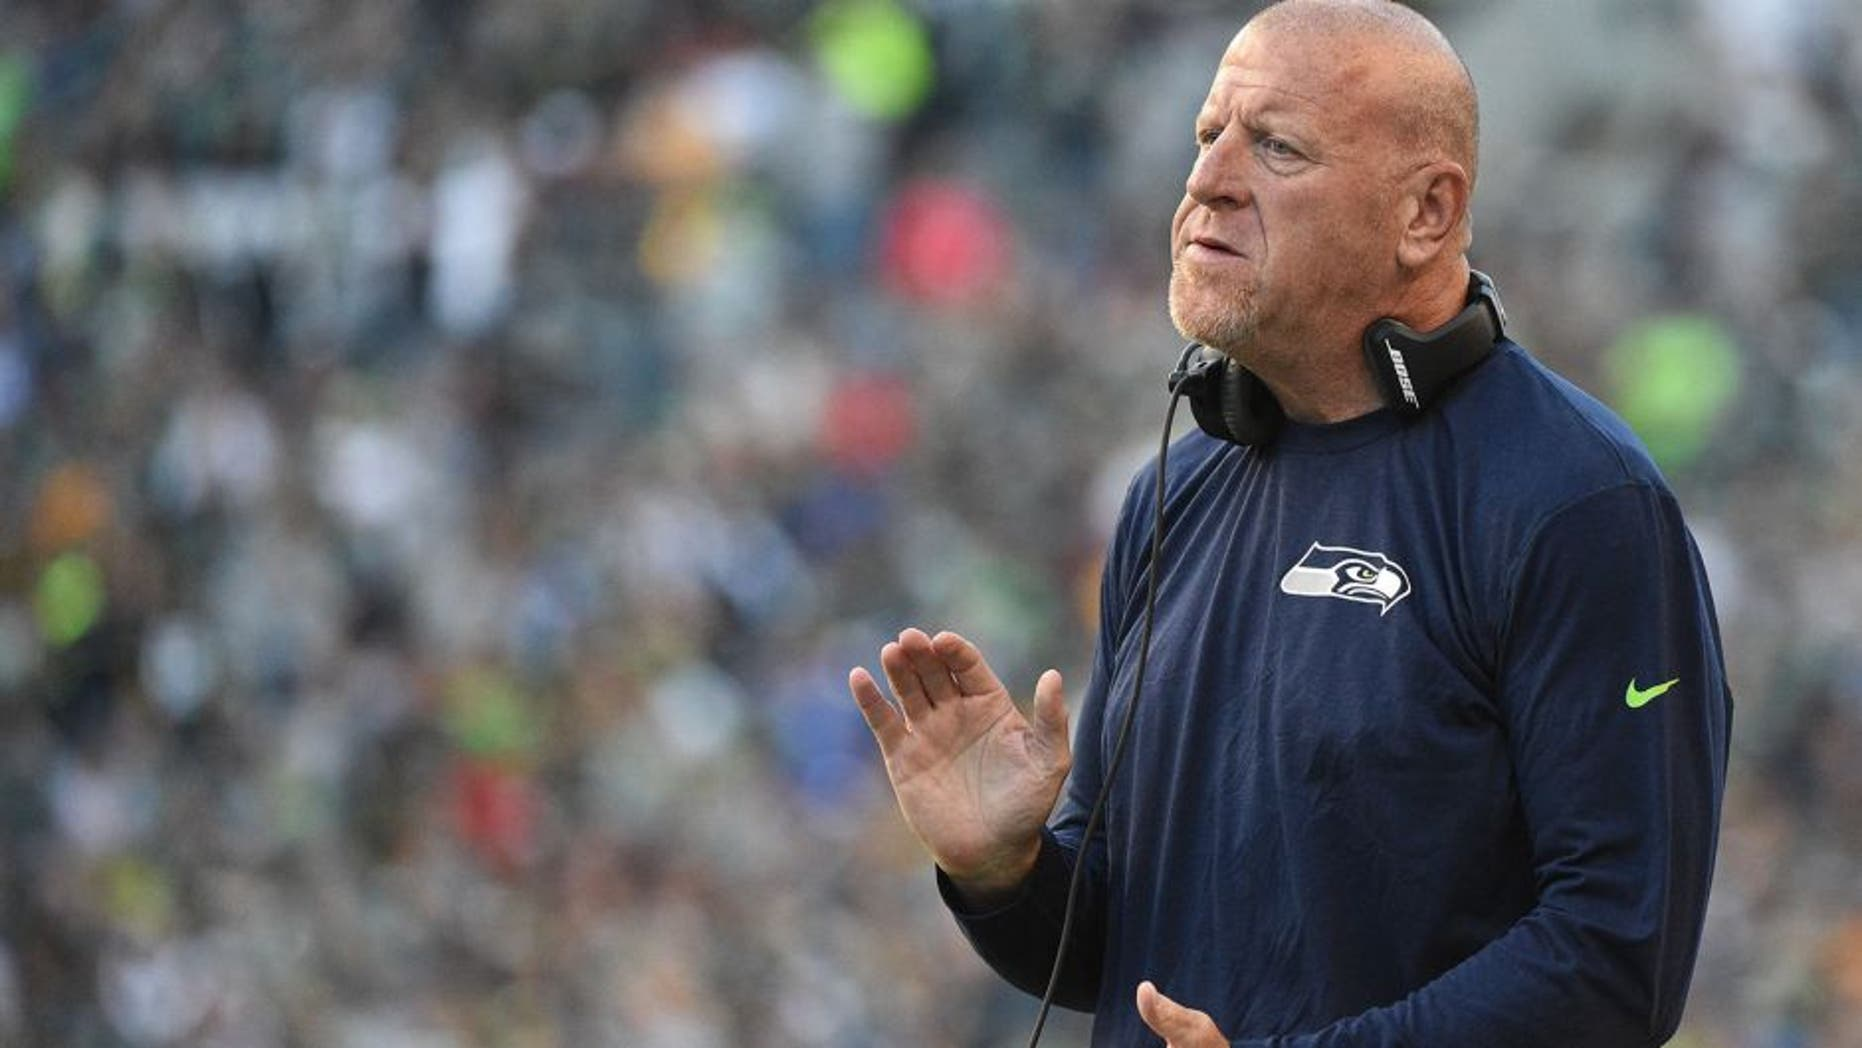 Sep 4, 2014; Seattle, WA, USA; Seattle Seahawks offensive line & assistant head coach Tom Cable during the second quarter against the Green Bay Packers at CenturyLink Field. The Seahawks defeated the Packers 36-16. Mandatory Credit: Kyle Terada-USA TODAY Sports